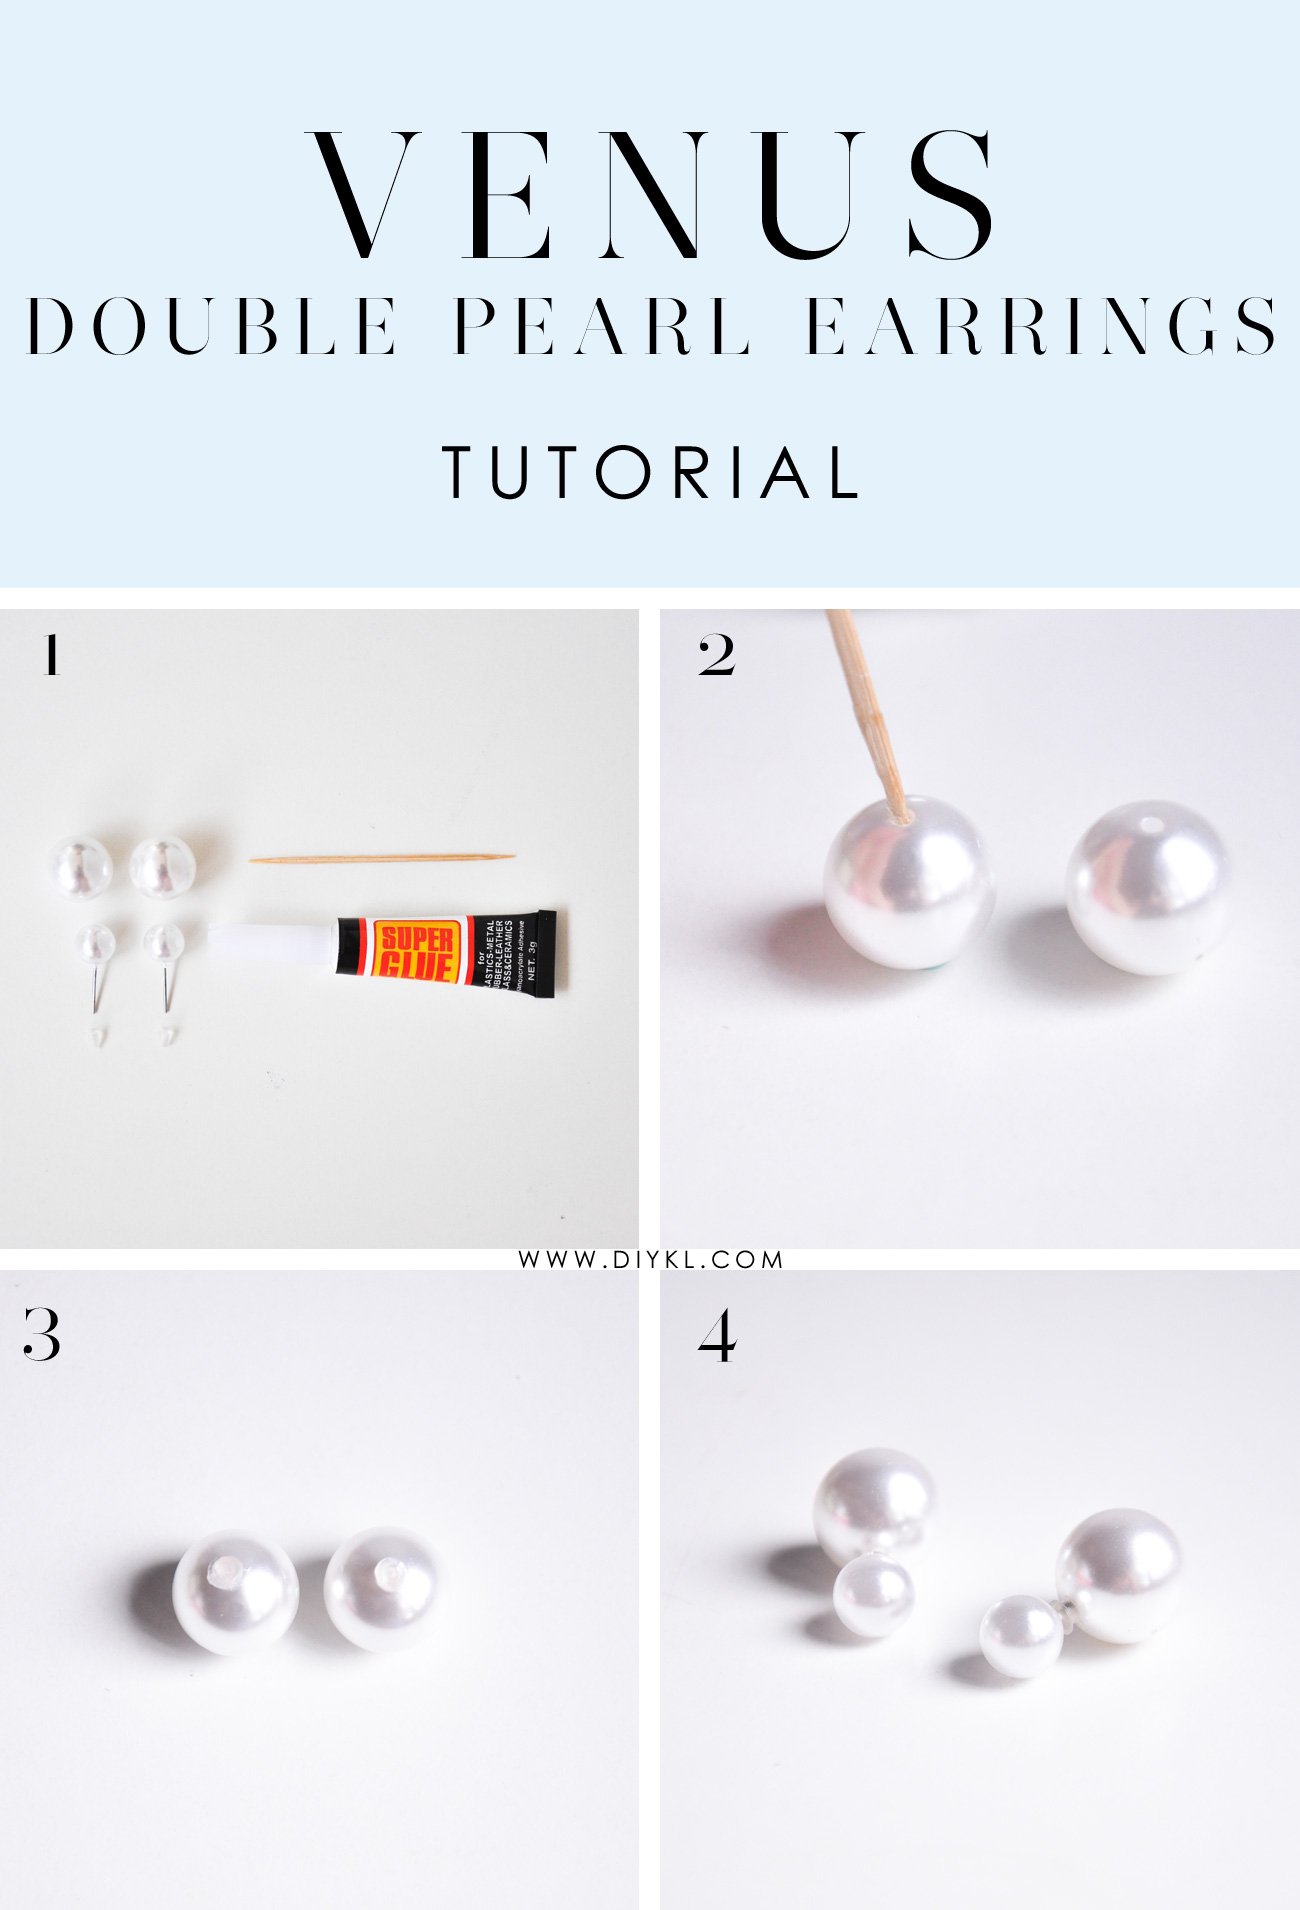 diykl VENUS Double Pearl Earrings